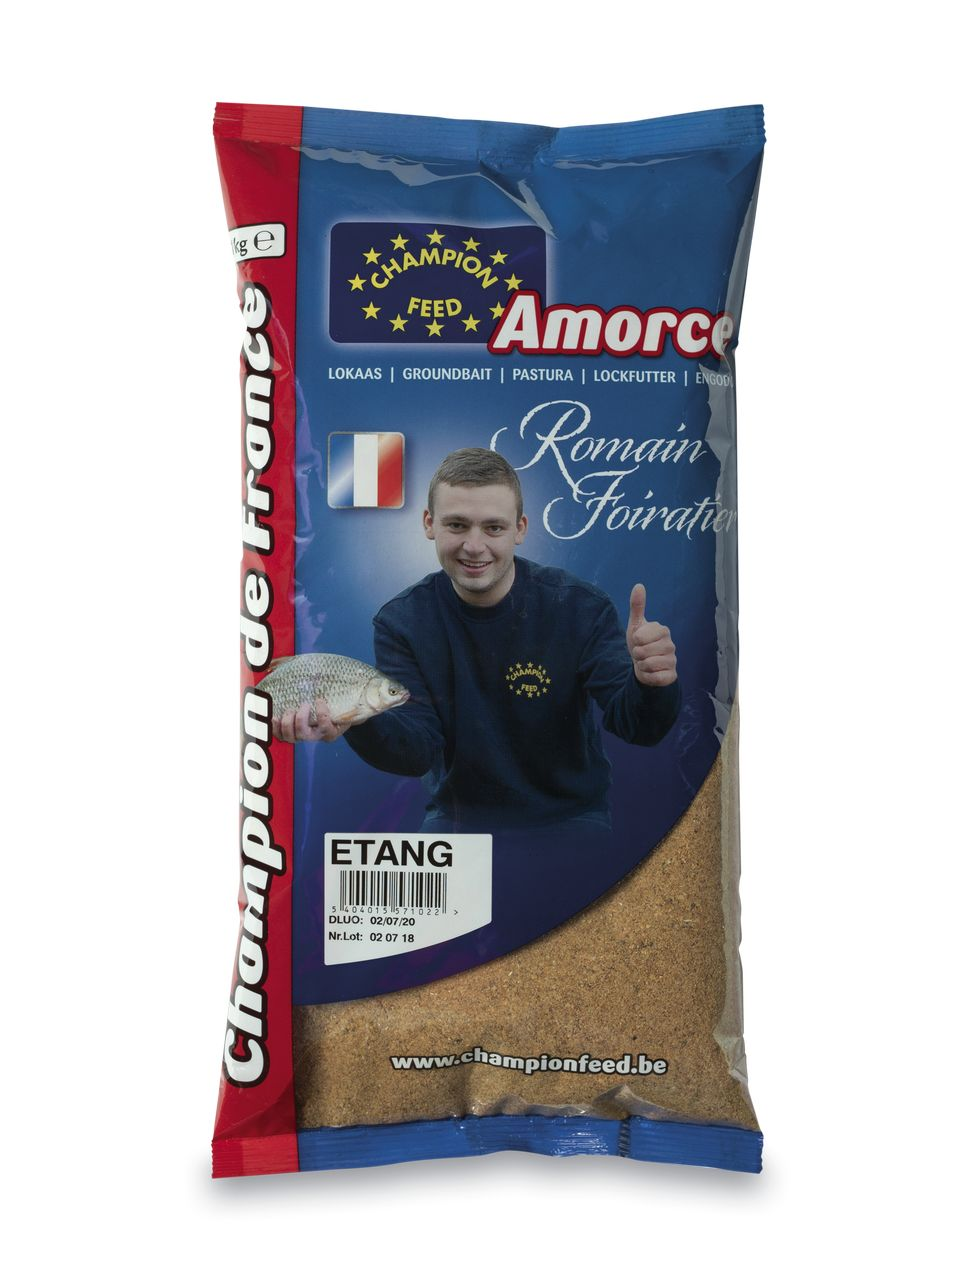 Amorce Champion Feed Champion de France Etang 1kg